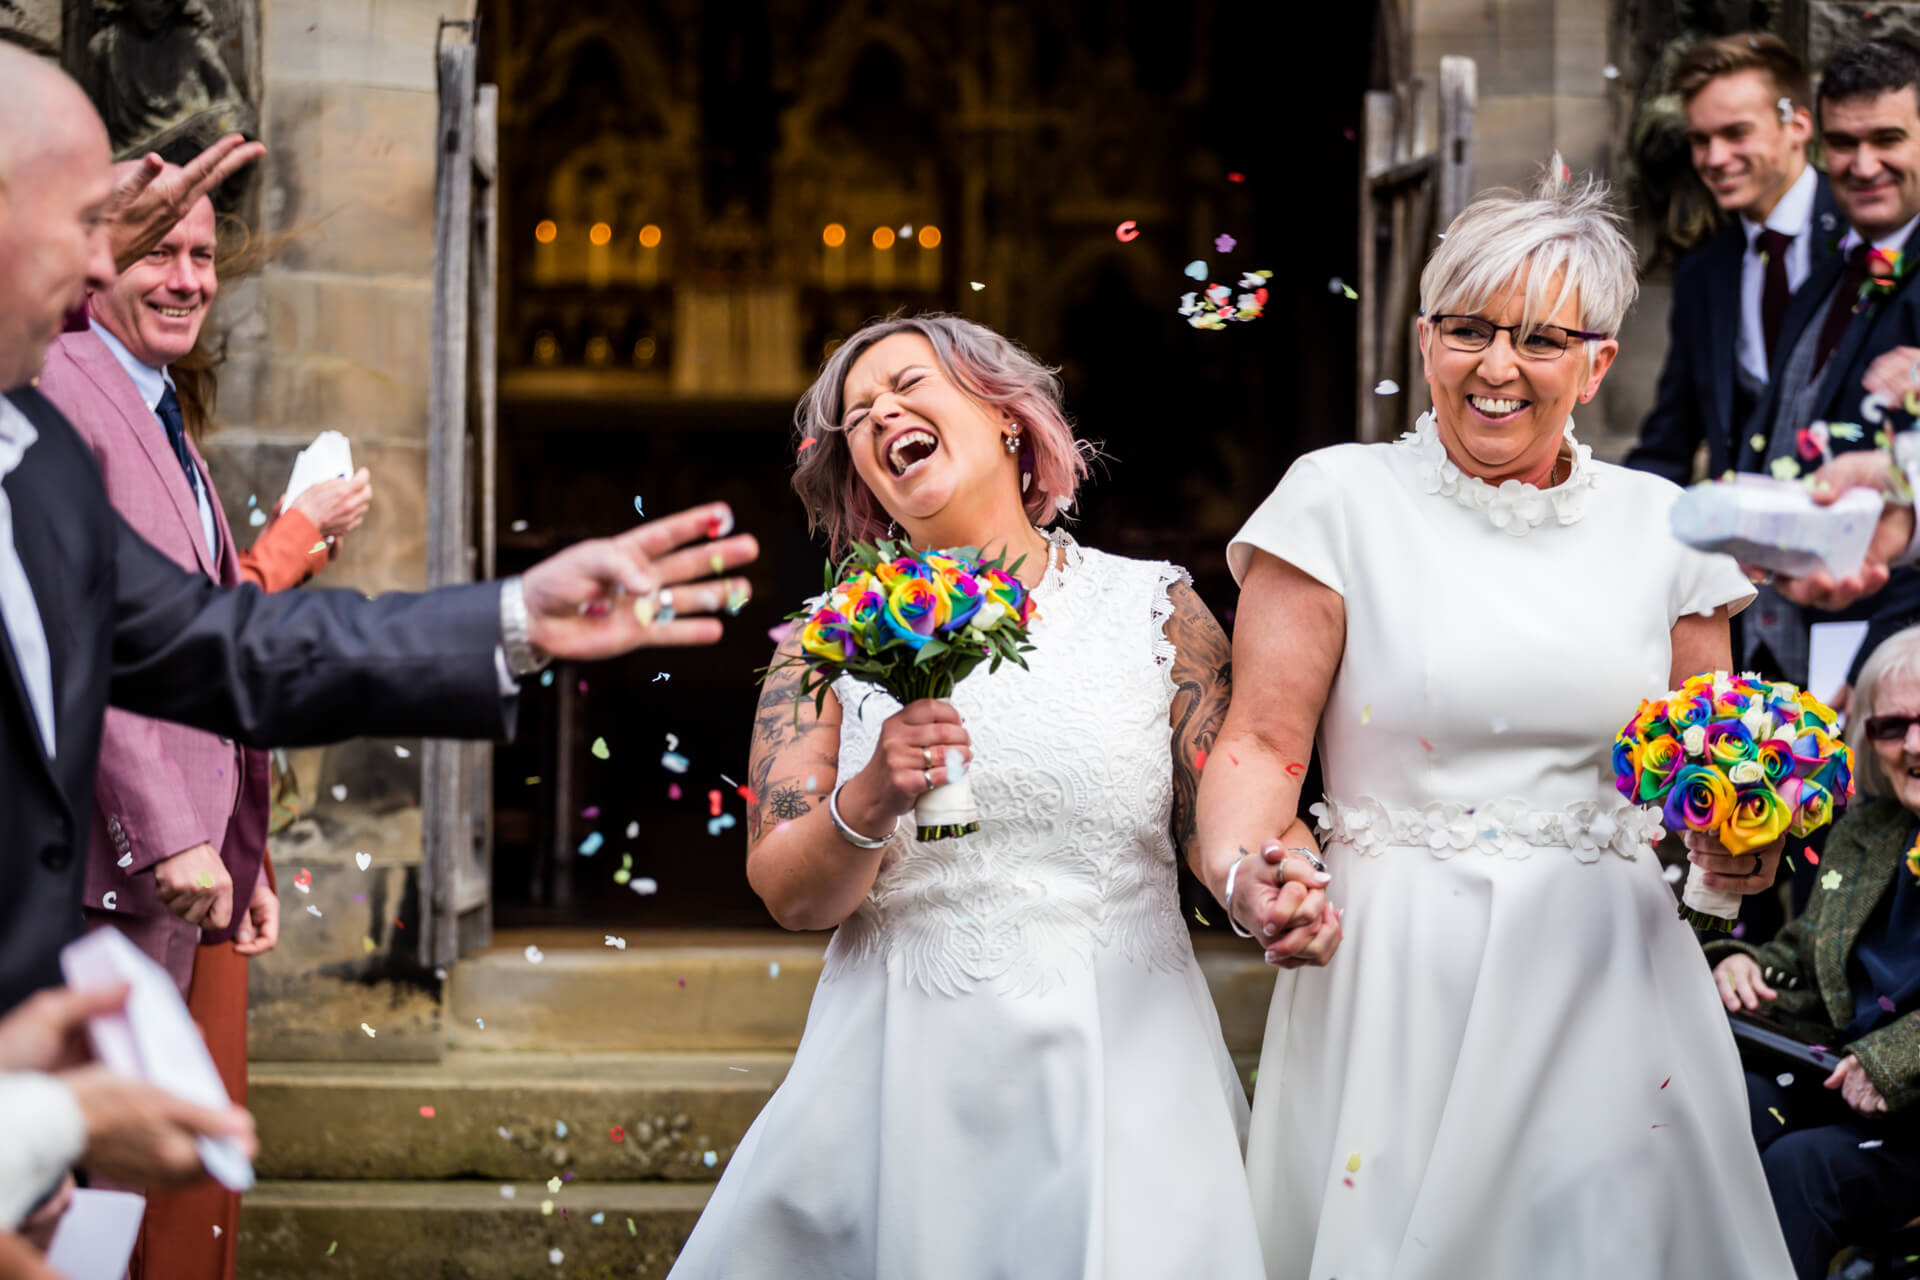 the couple laugh as confetti is thrown over them